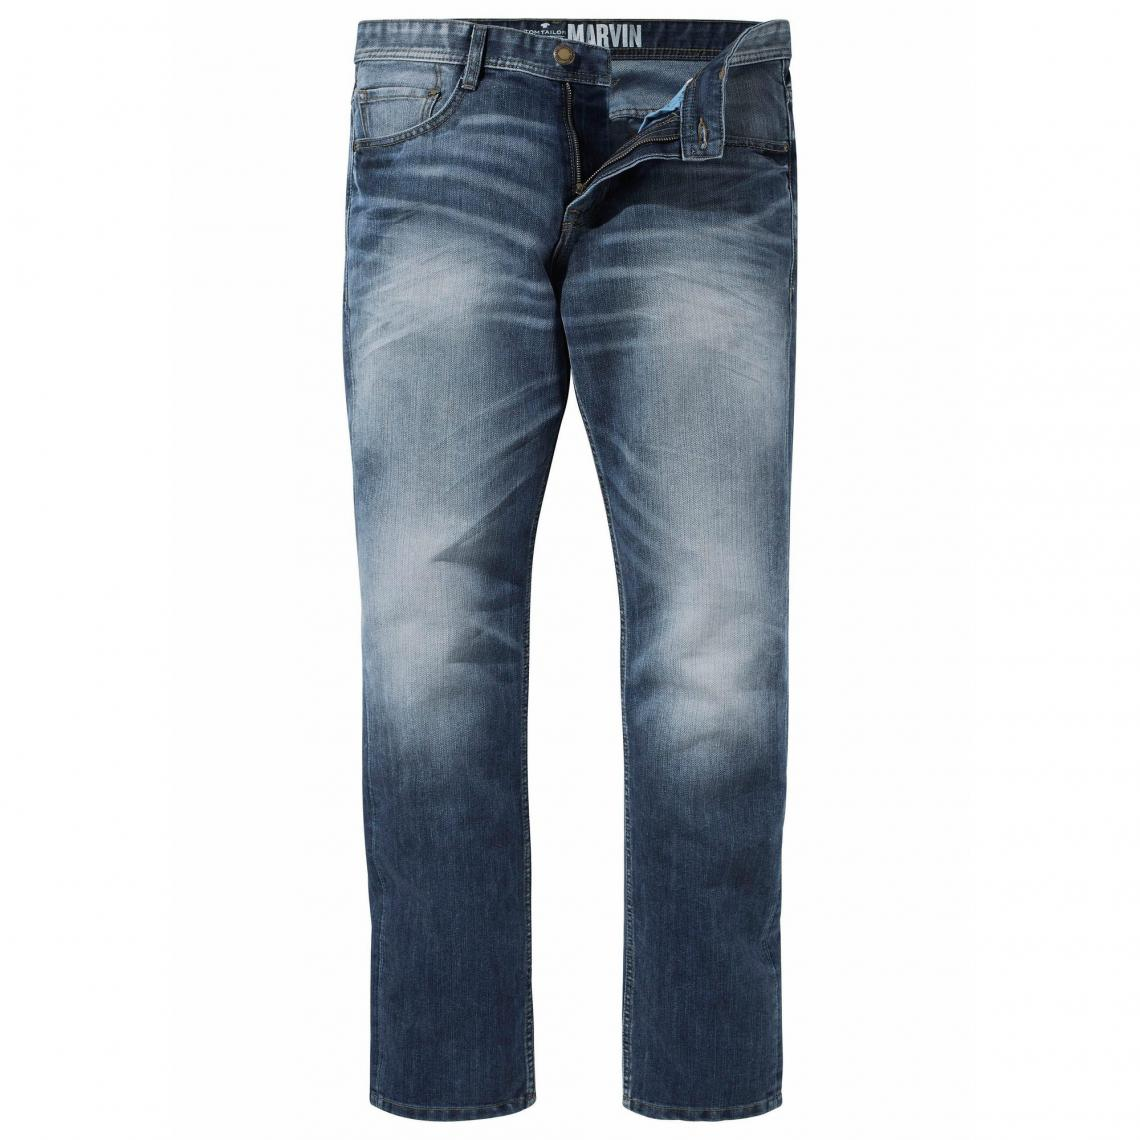 Used Marvin 3Suisses homme used slim Tailor 5 Jean Tom L36 poches qCzdn e5710cbeb68